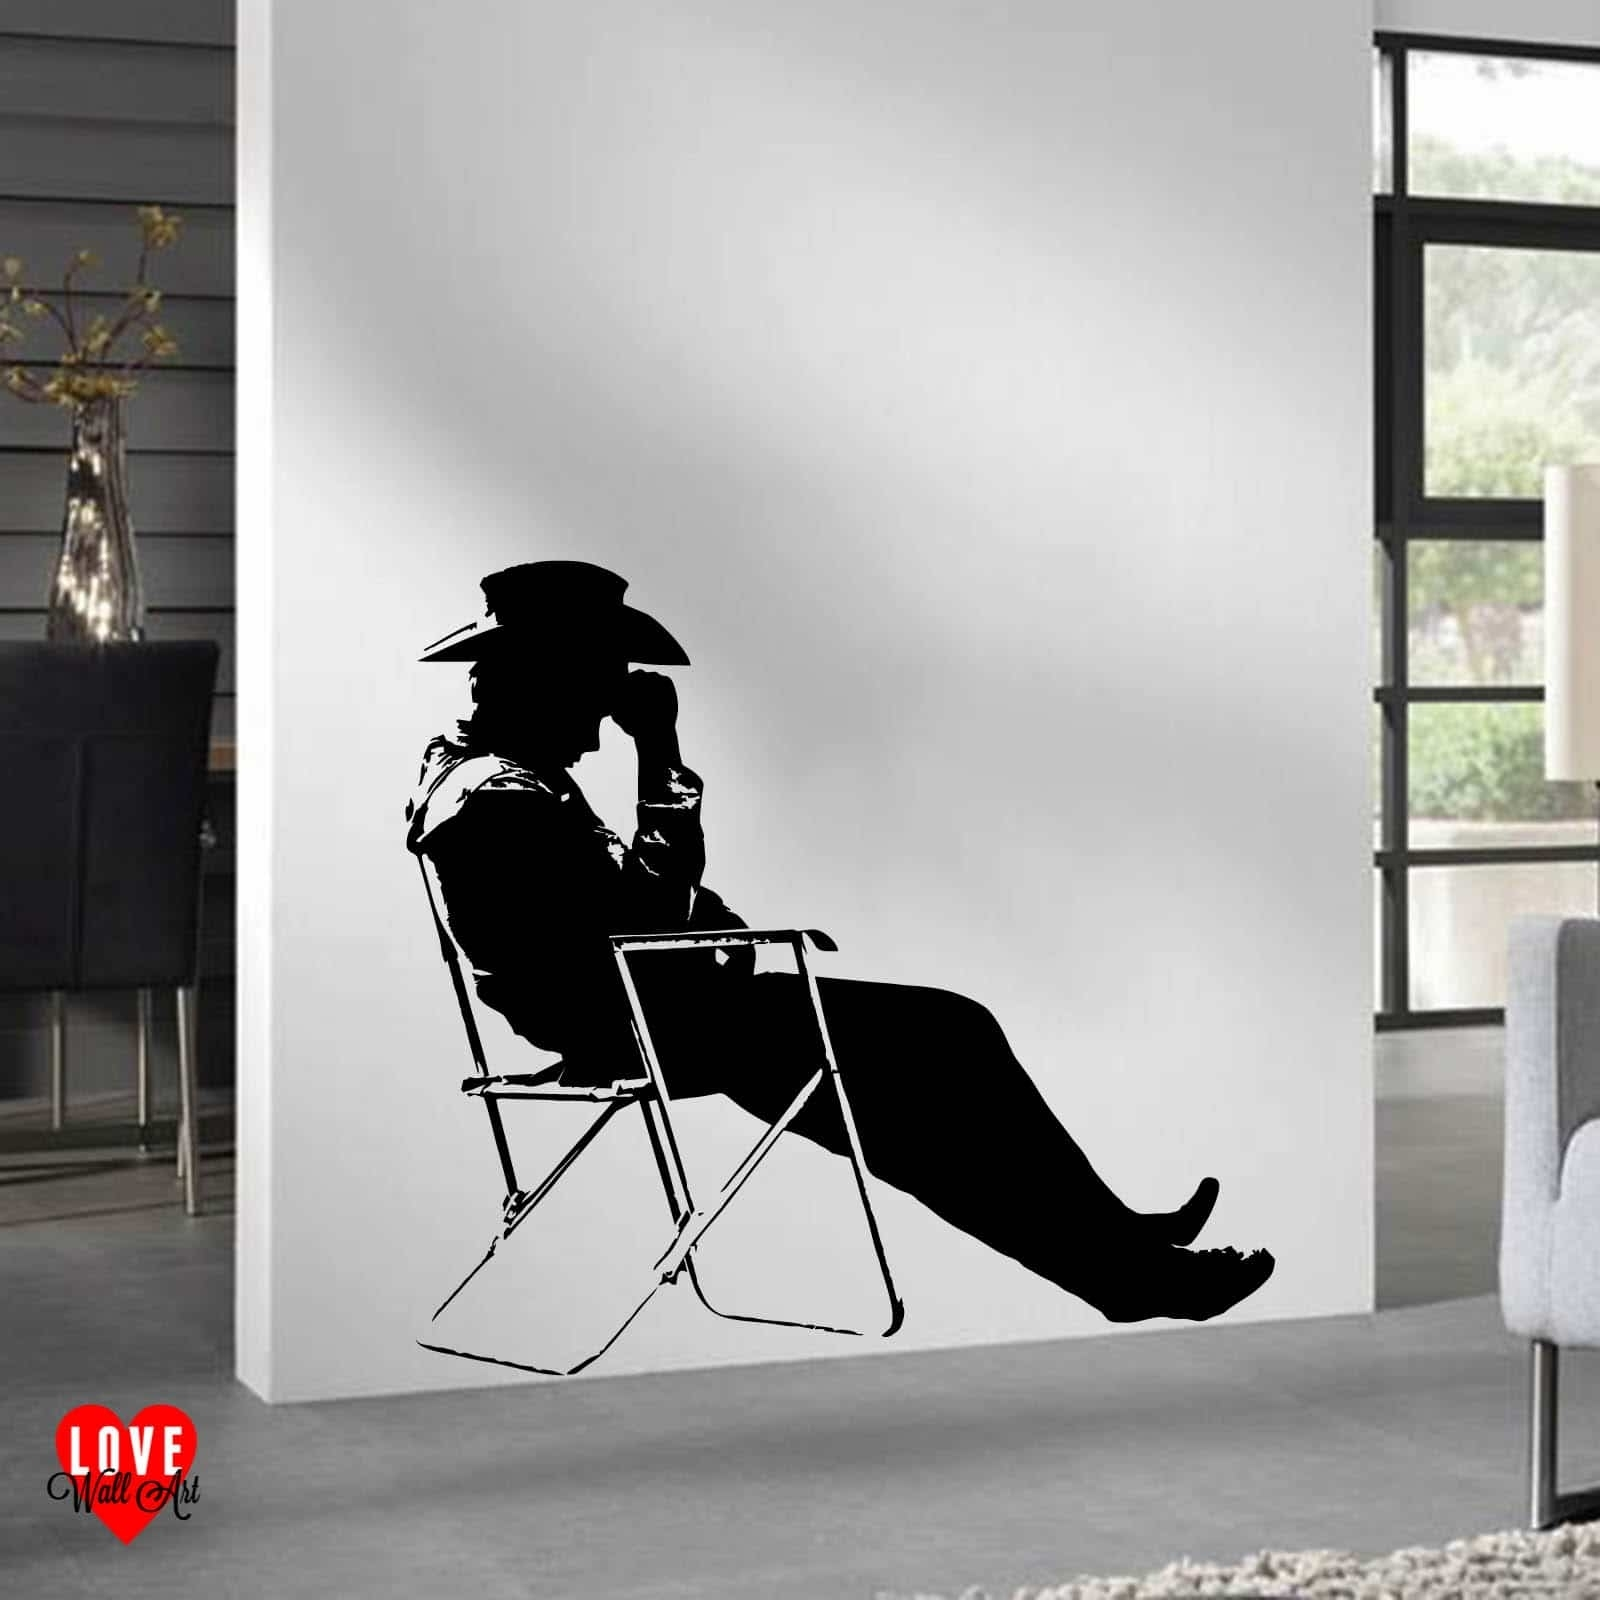 James Dean On The Movie Set Of Giant Large Wall Art Sticker Within Most Popular Giant Wall Art (View 20 of 20)